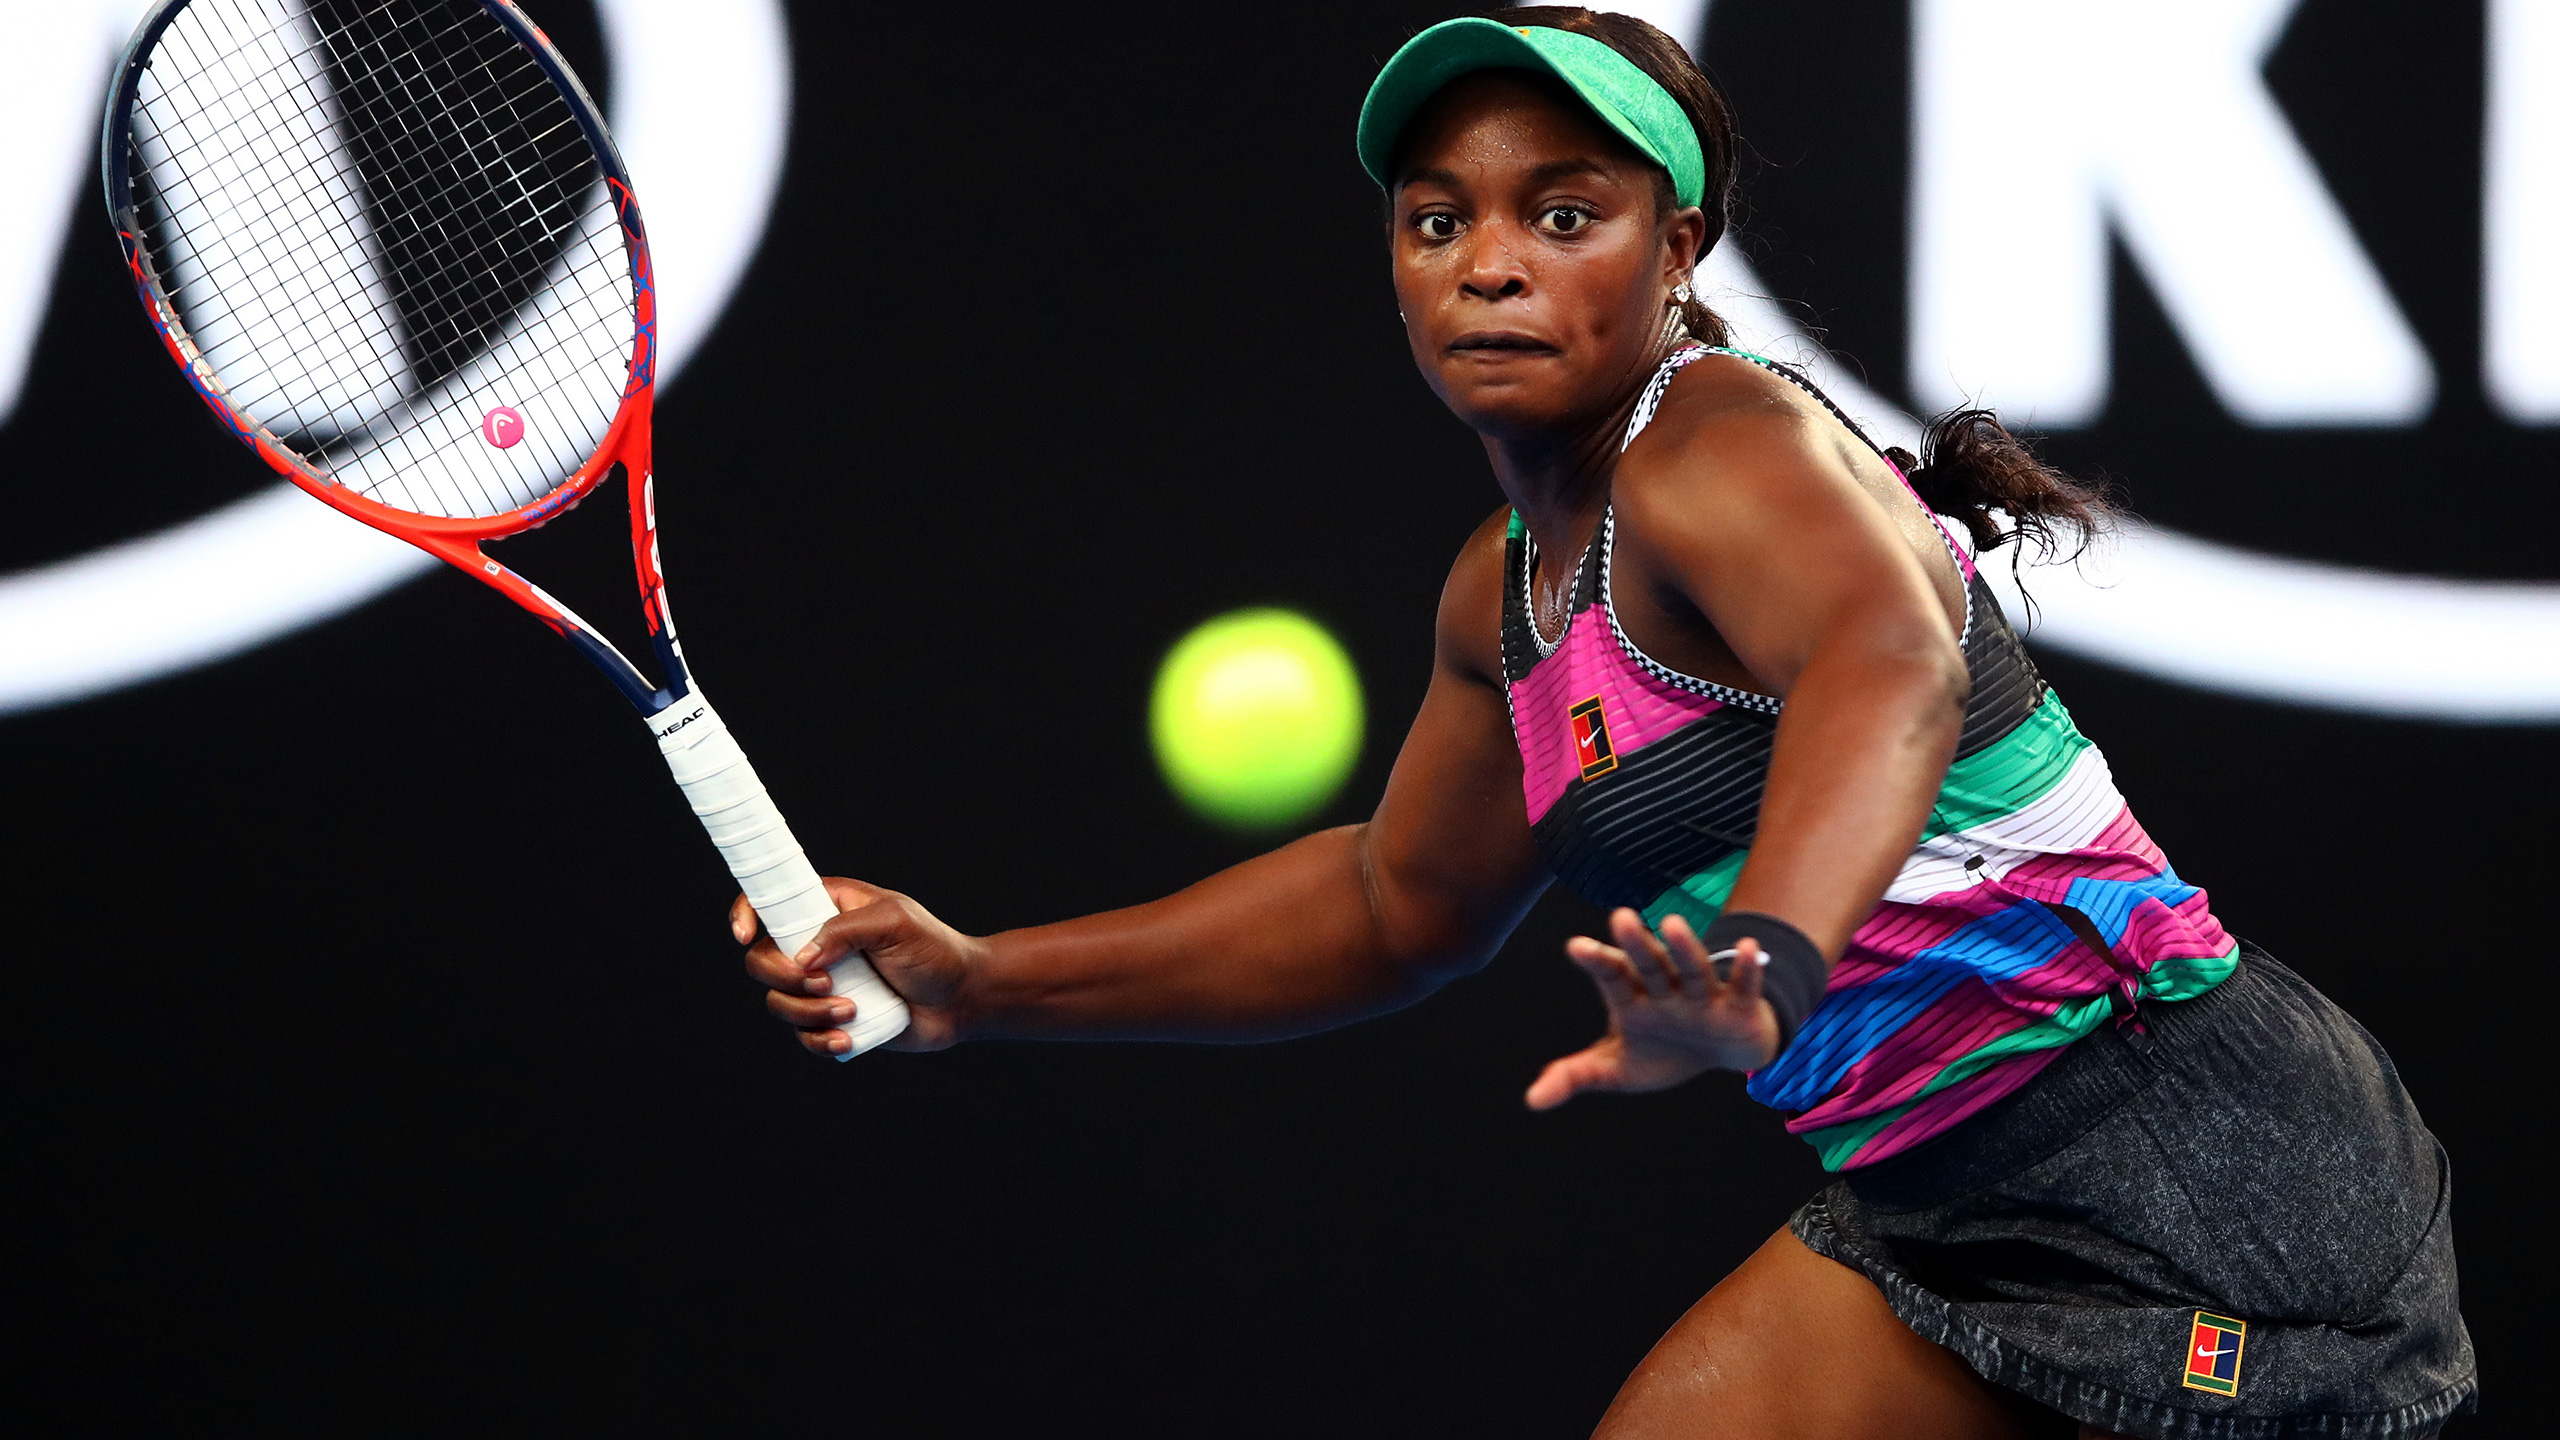 (5) Stephens vs. Pavlyuchenkova (Women's Fourth Round)